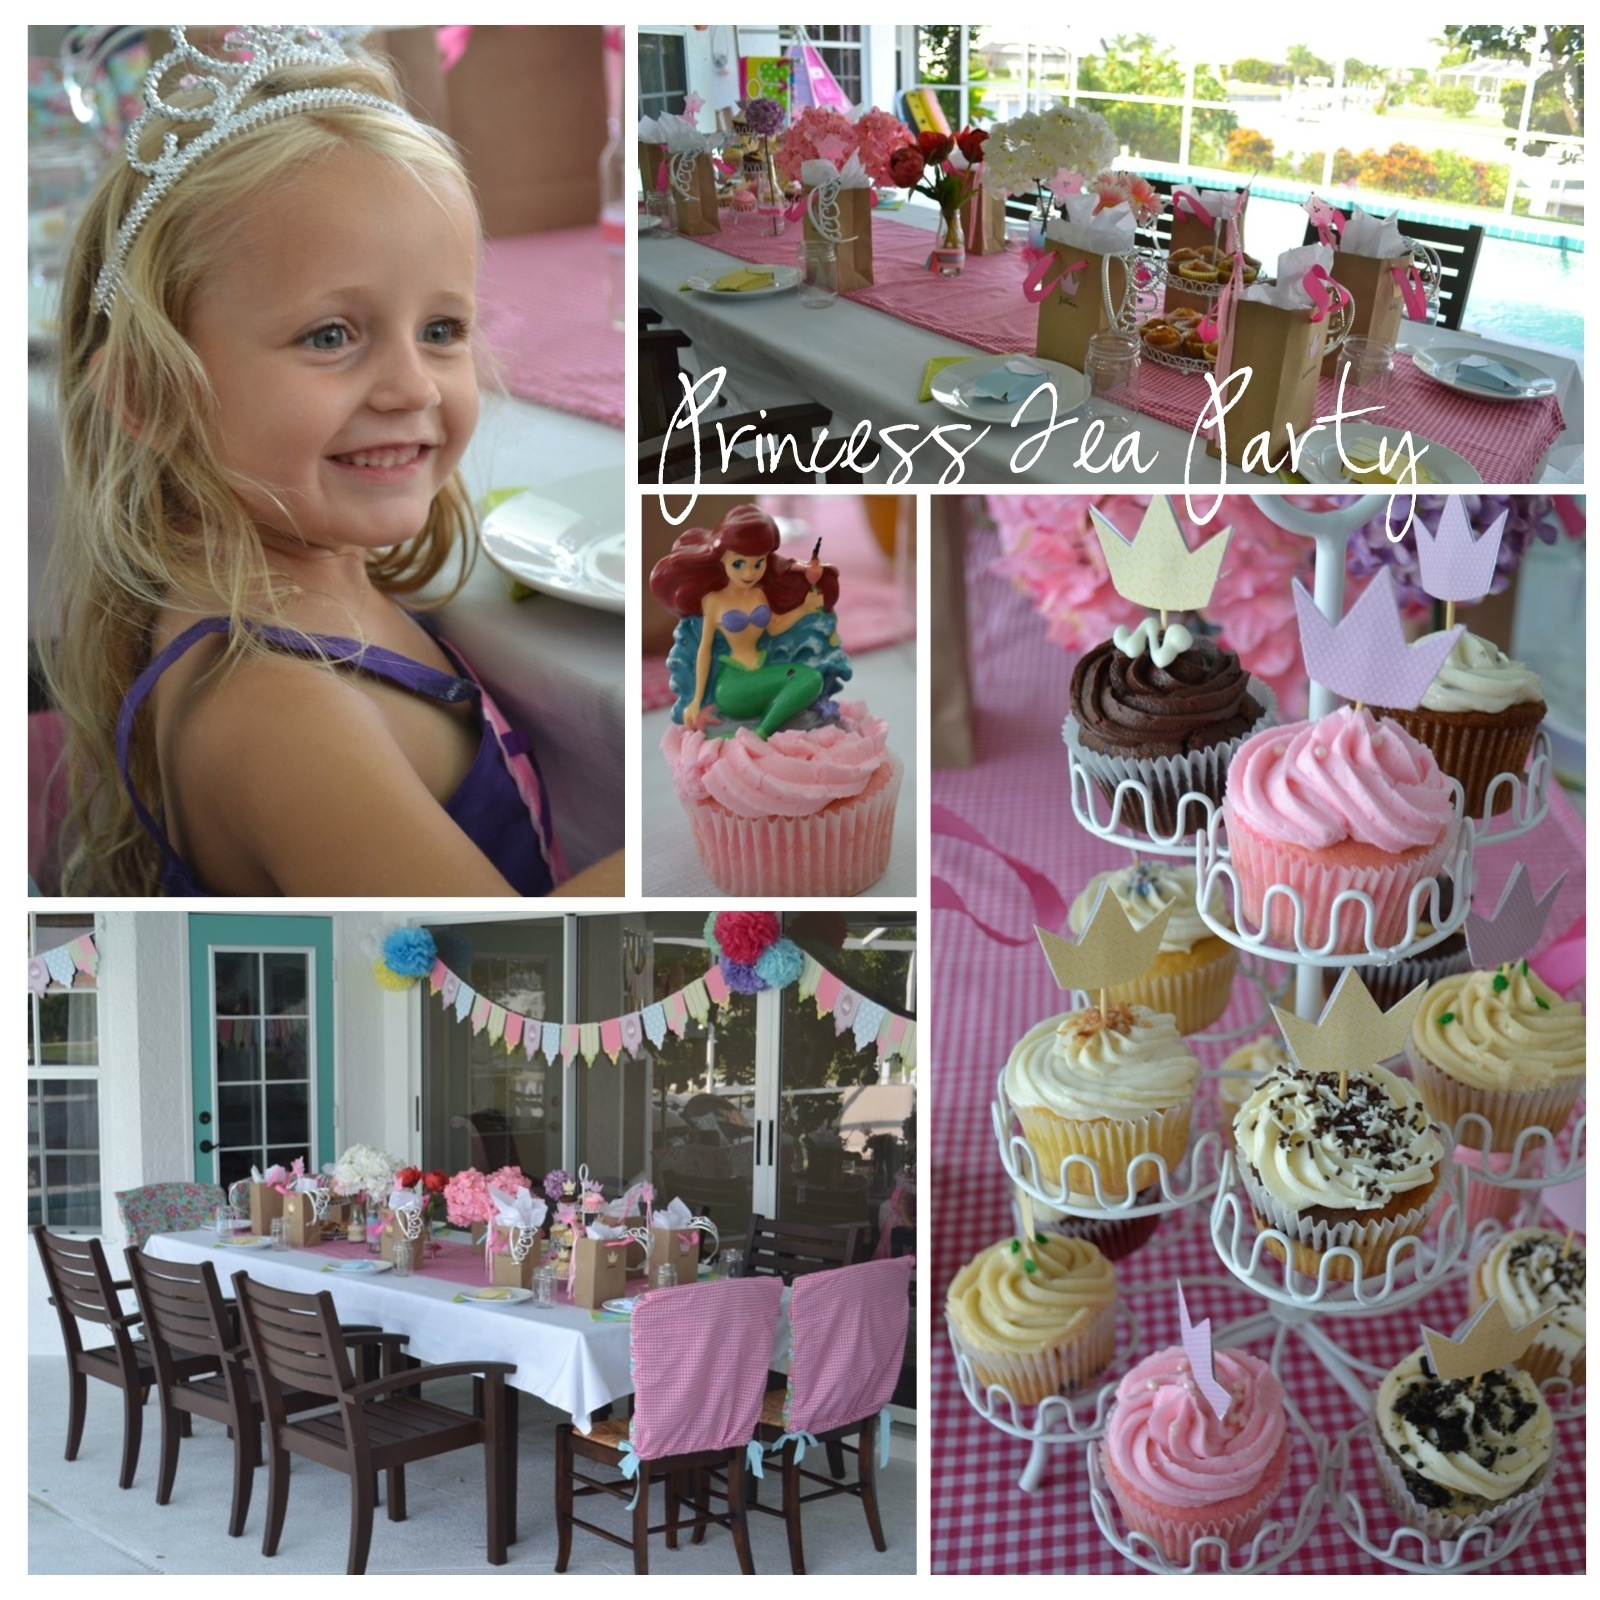 10 Stylish Princess Tea Party Birthday Ideas %name 2020